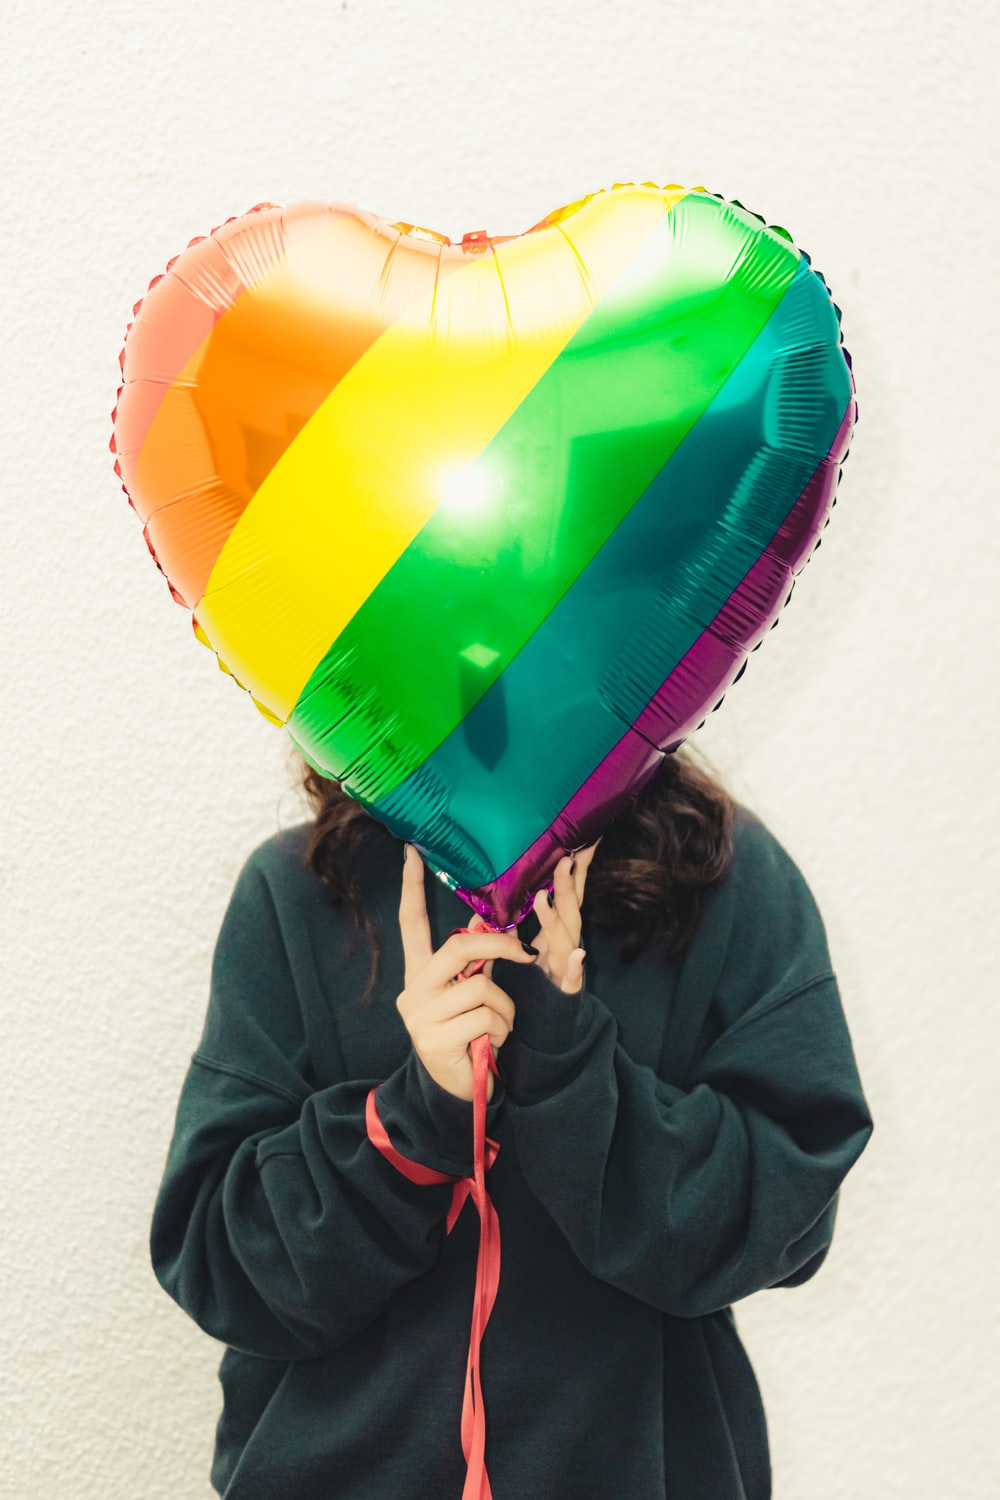 person holding yellow and green balloon